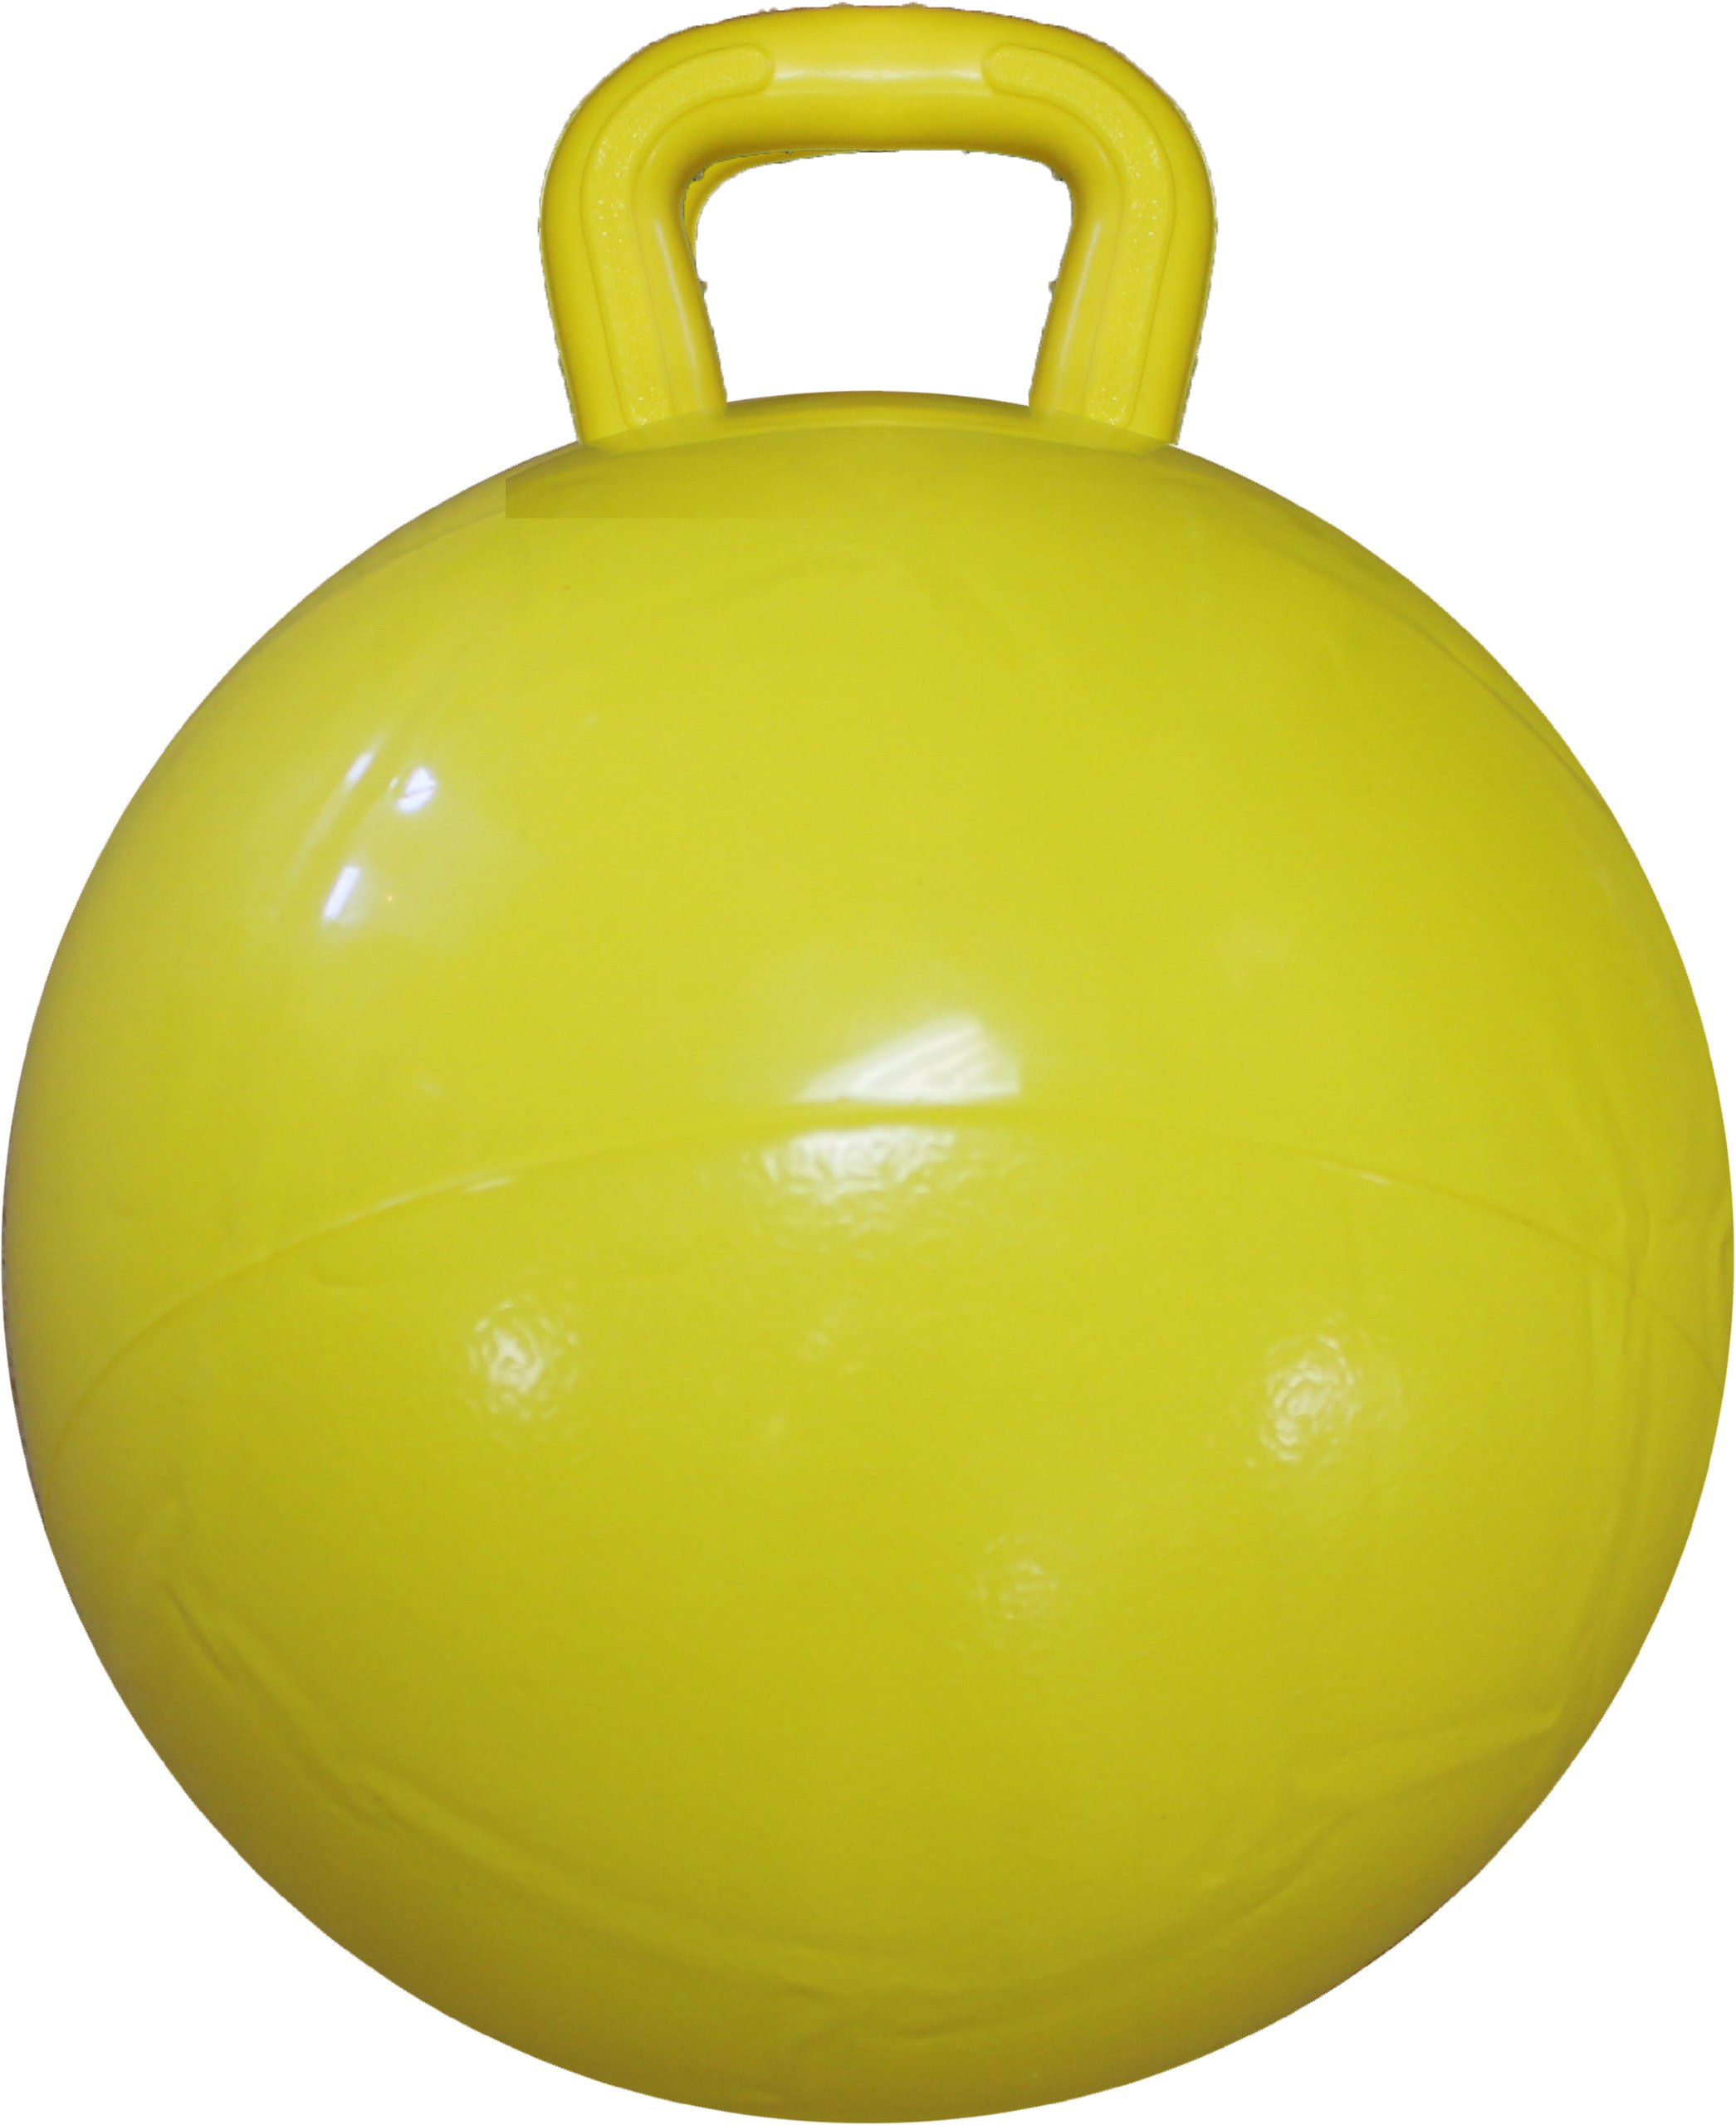 KUFA 15'' Inflatable Prawn shrimp Pot Float Buoys F15Y